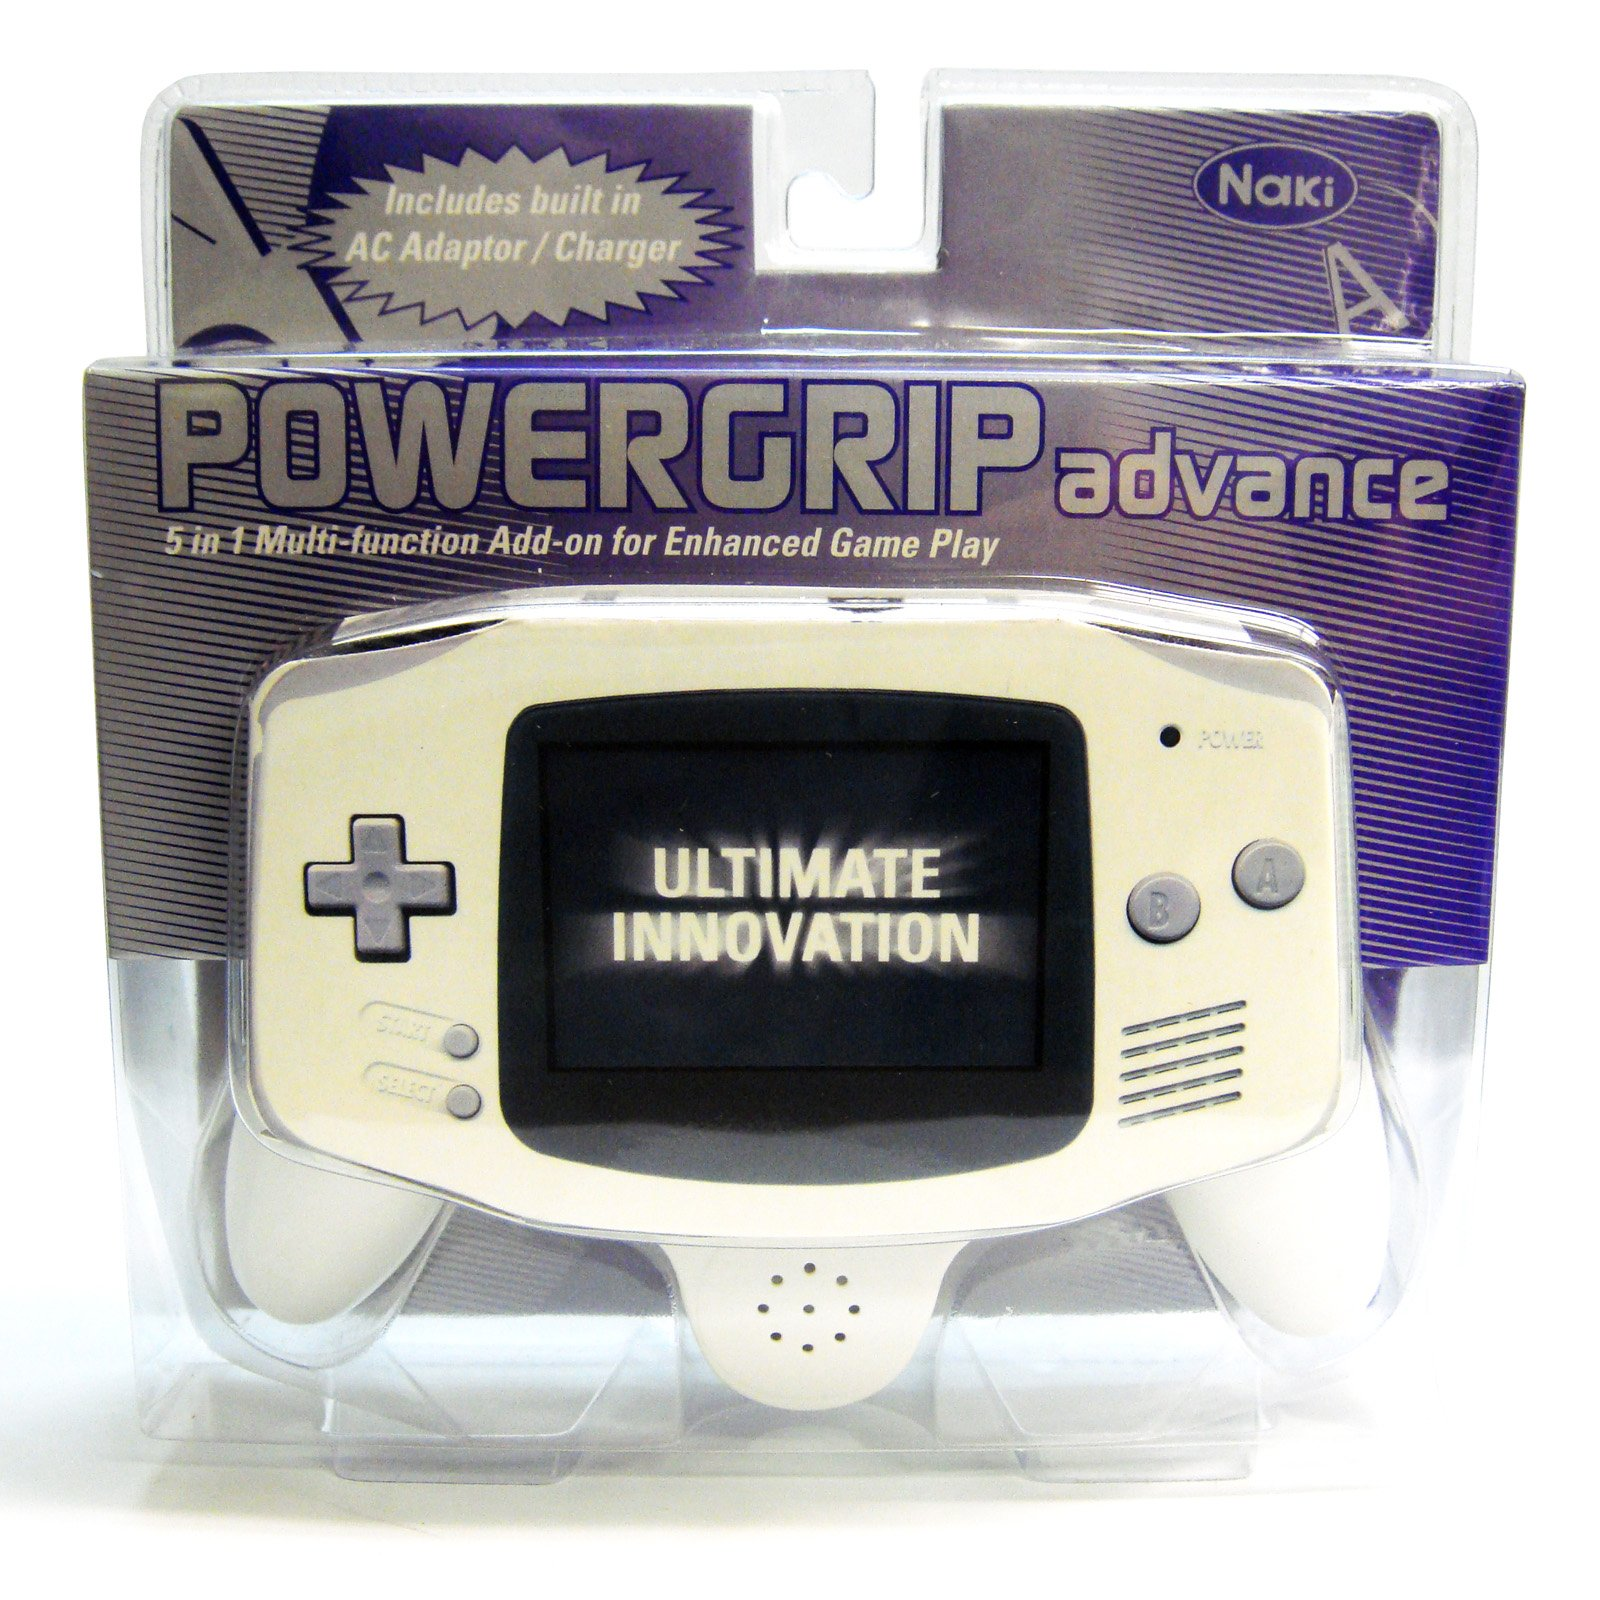 Powergrip Advance 5-in-1 Add-on for Game Boy